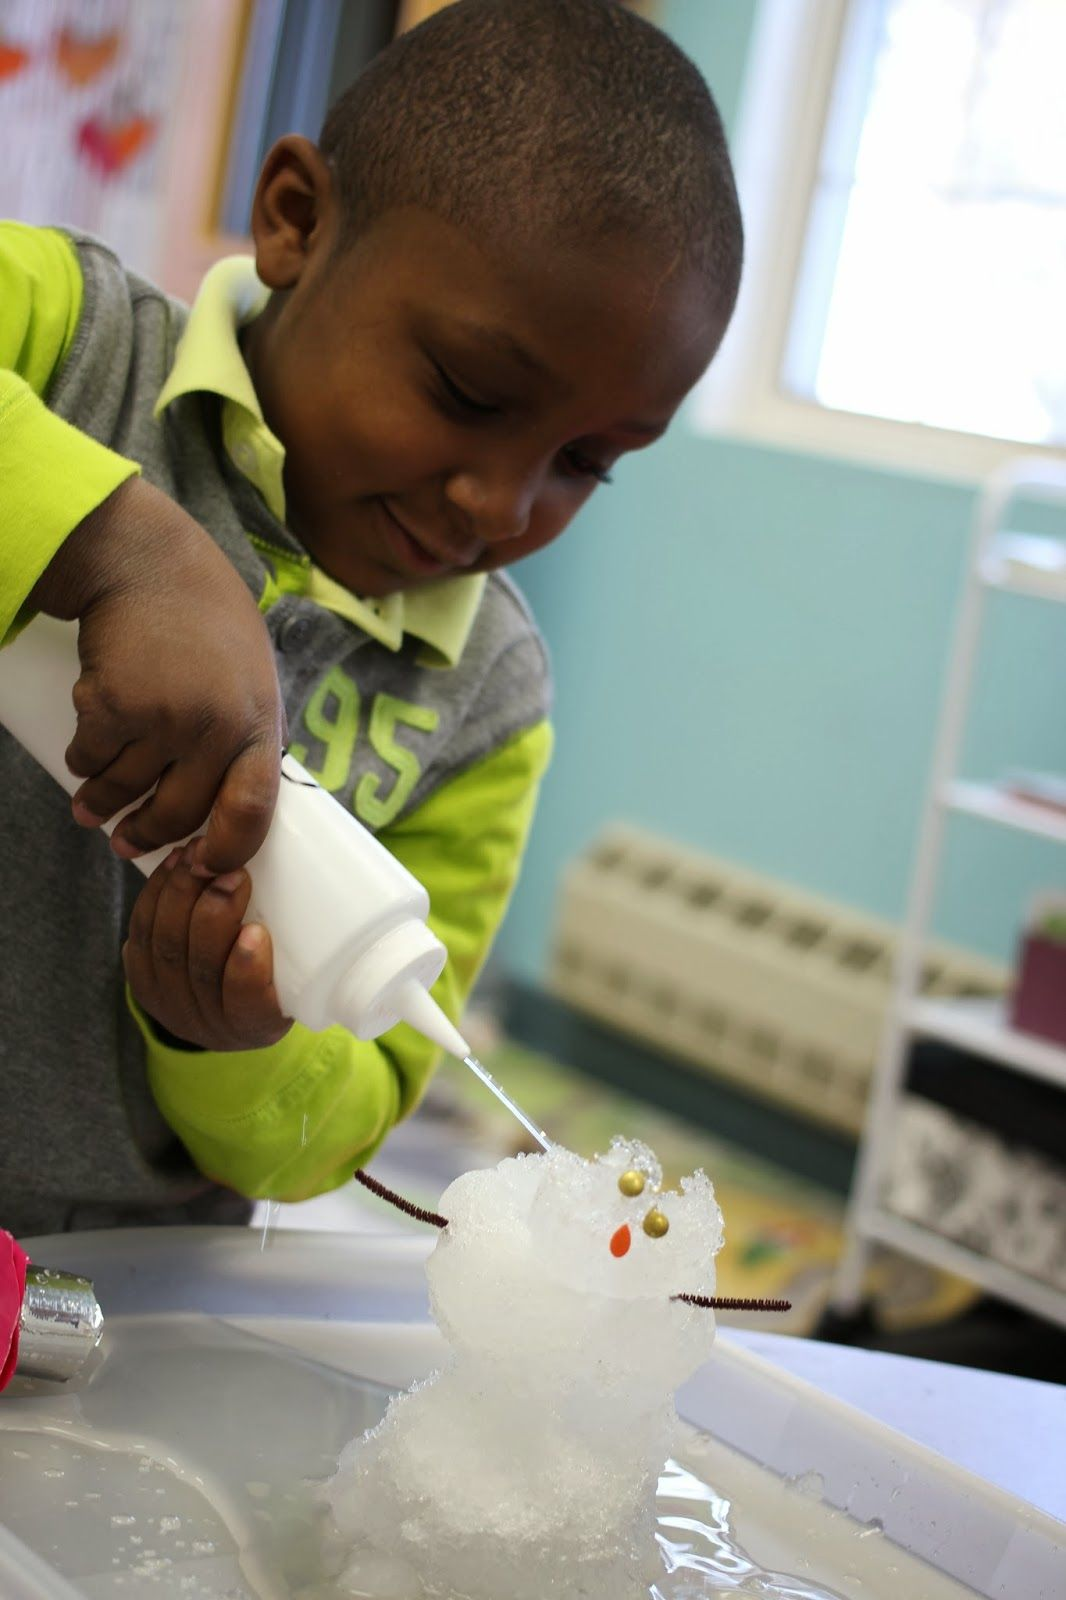 Making Predictions On What Will Happen If You Add Warm Water To A Snowman A Great Prek Activity